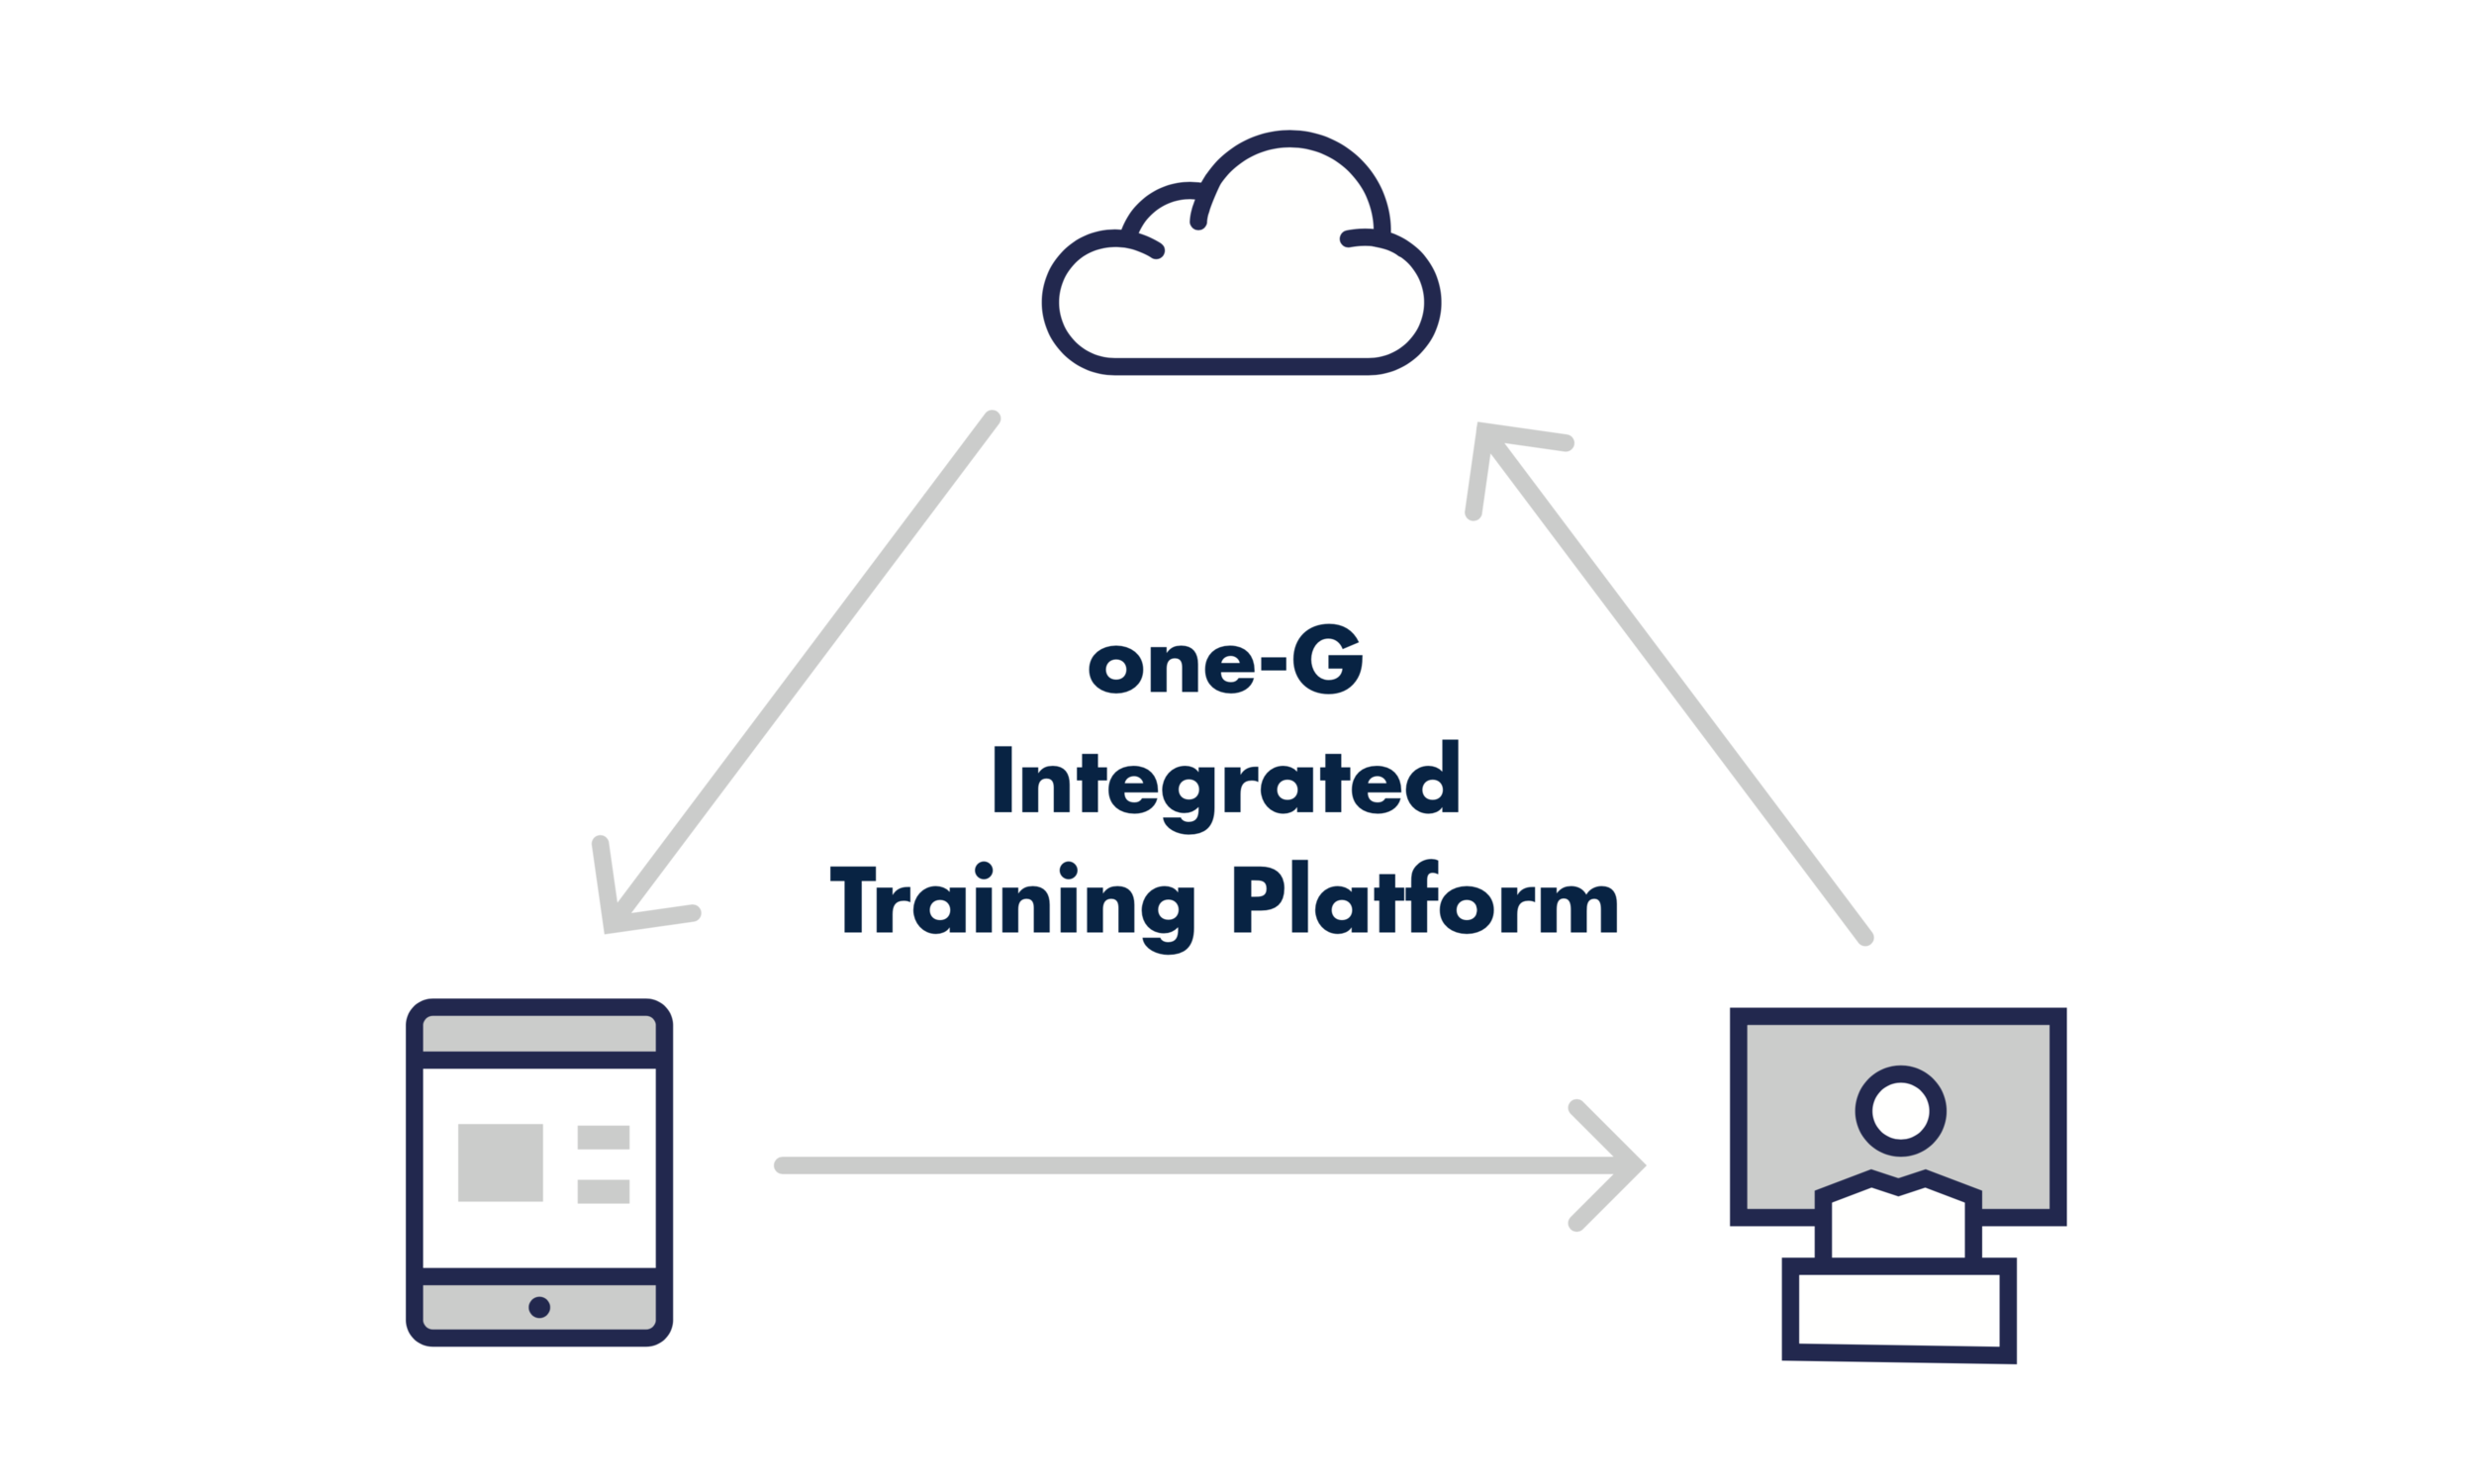 Featured Software:one-G Platform - The integrated cloud based system ties the one-G Foundation™ sim to our IOS and Portal. Track student's progress, create dynamic and difficult training sessions and review data from any device.